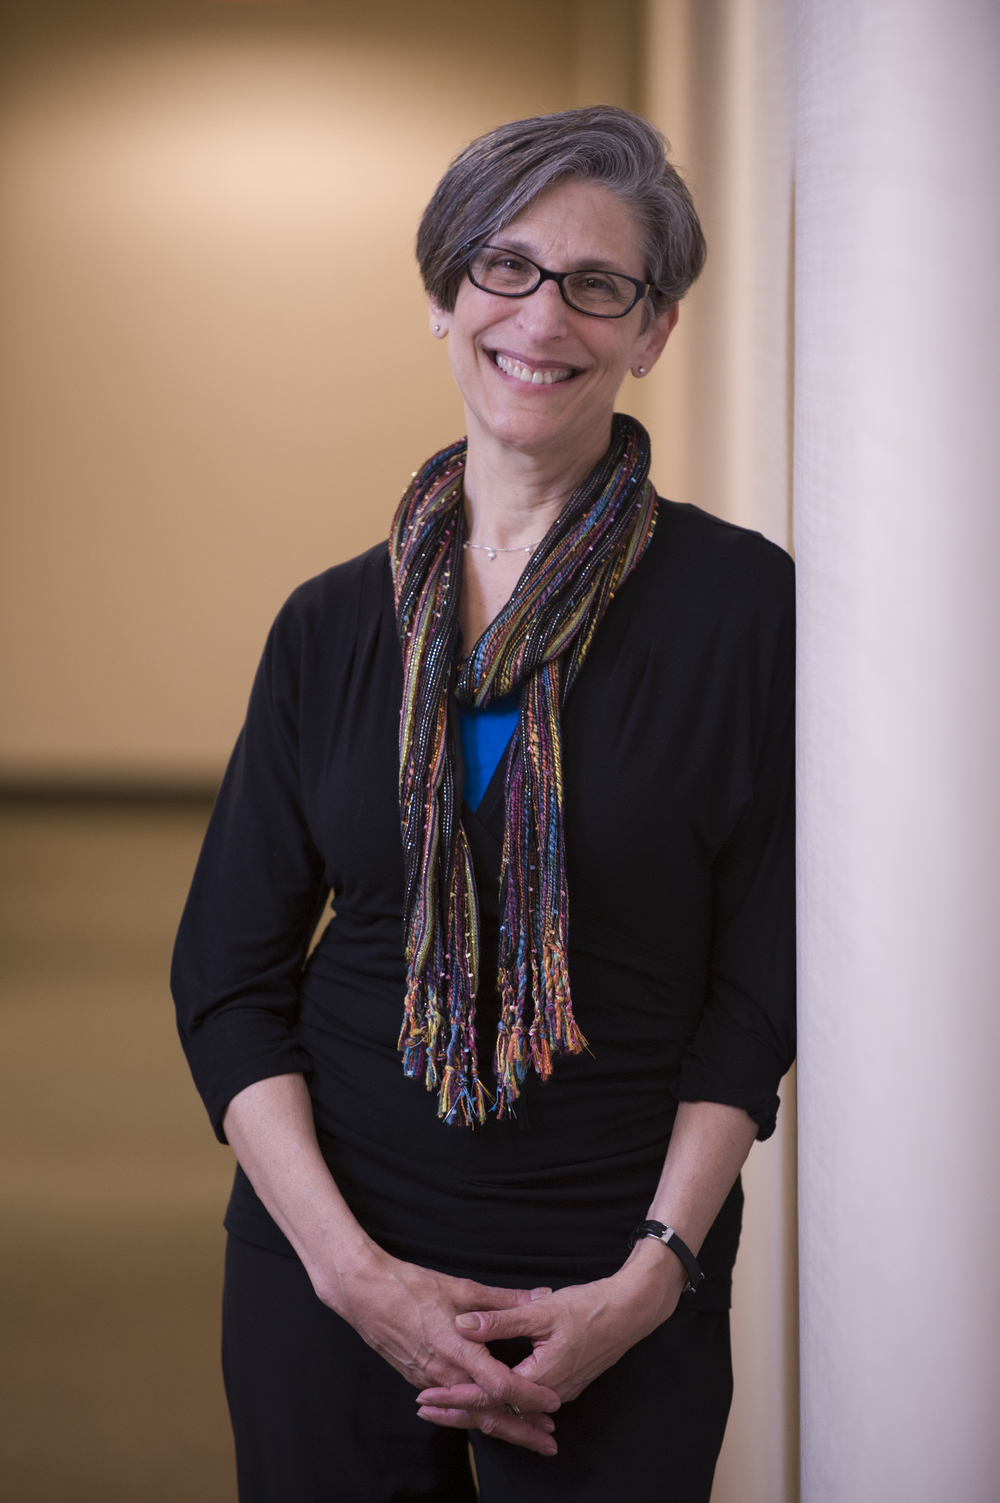 Rabbi JoHanna Potts